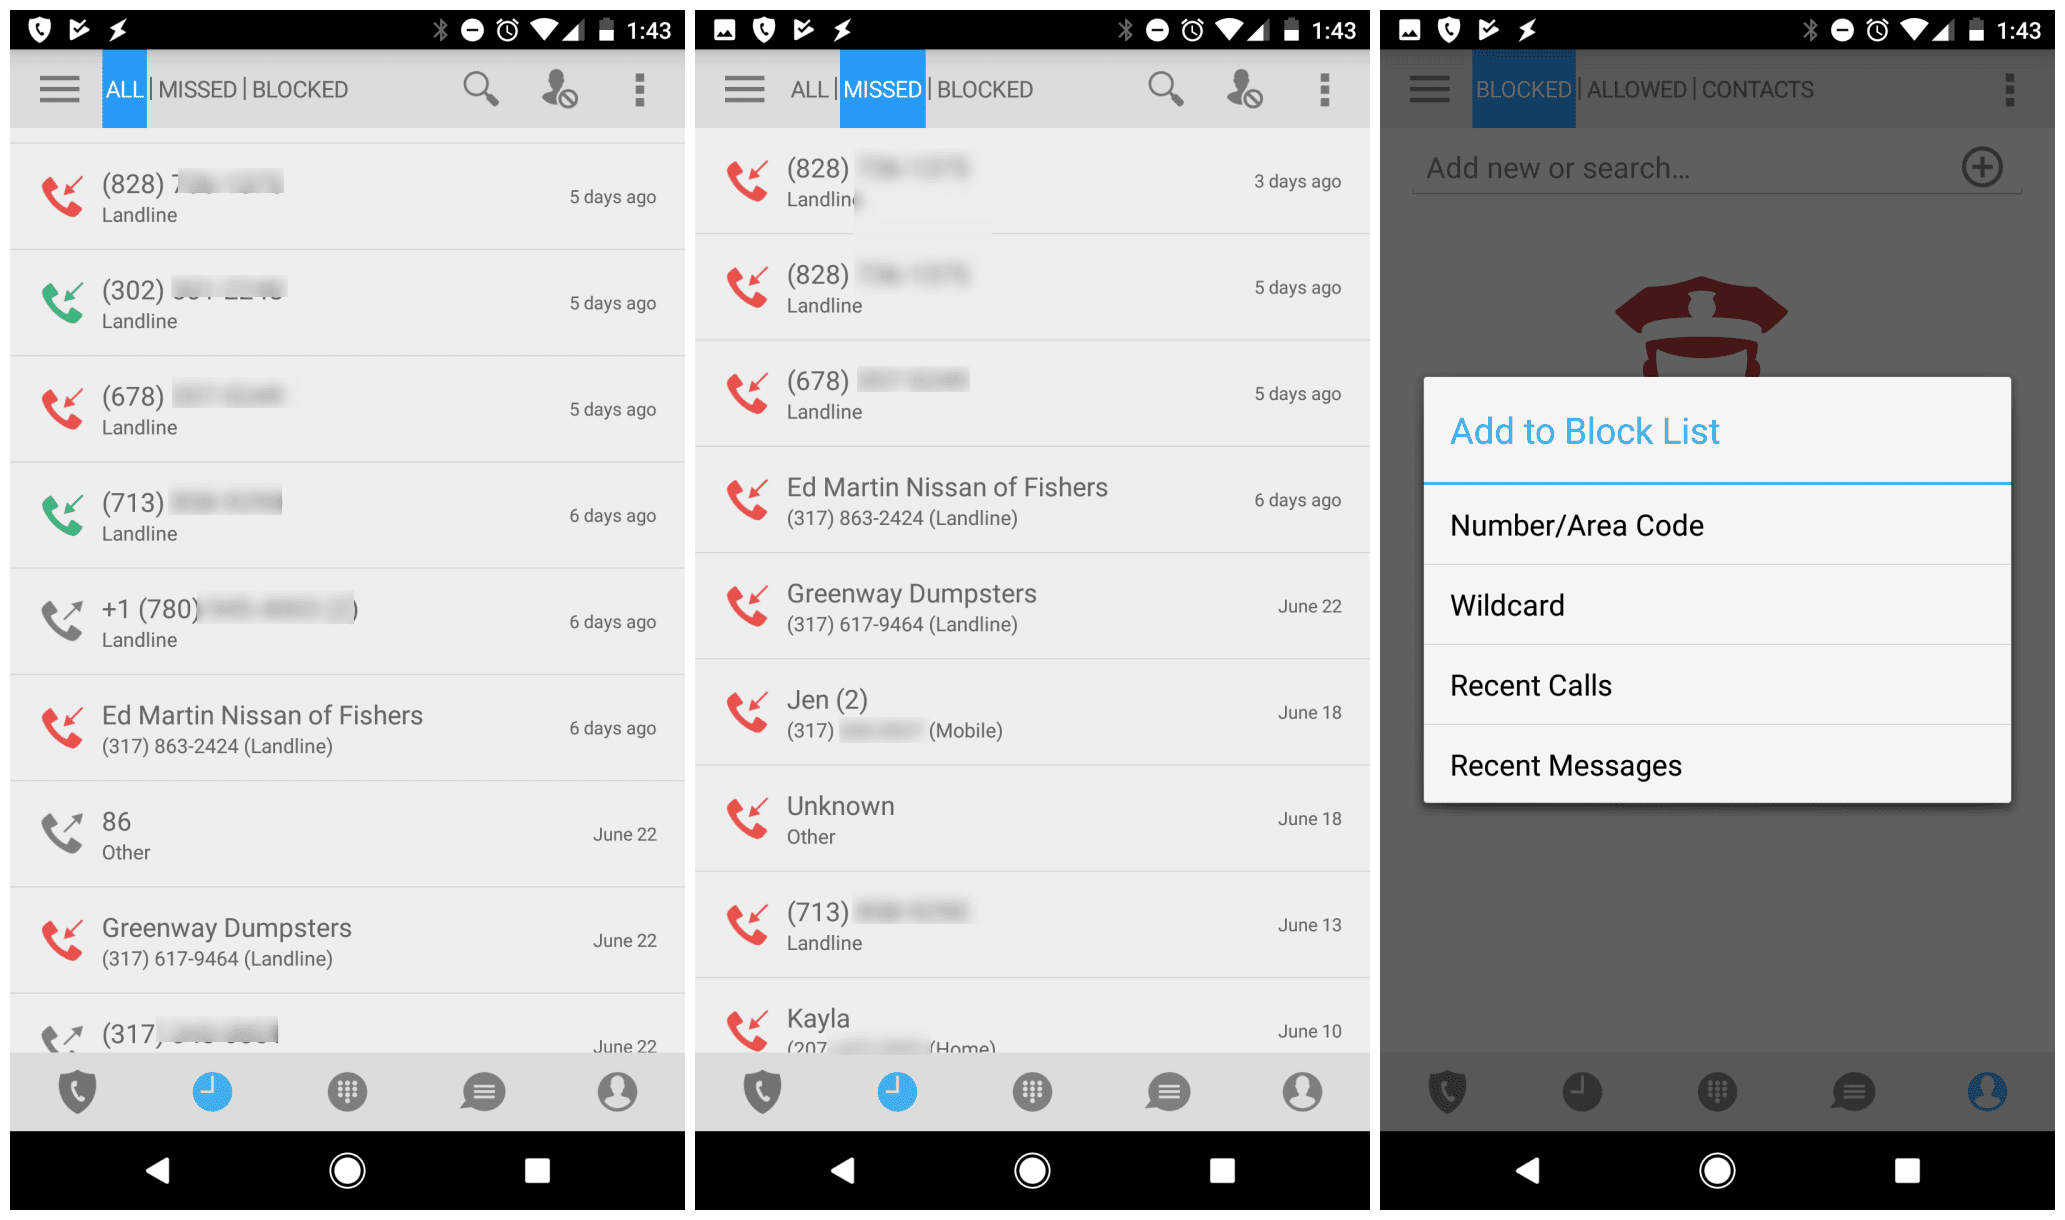 How to Block Spoofing Calls